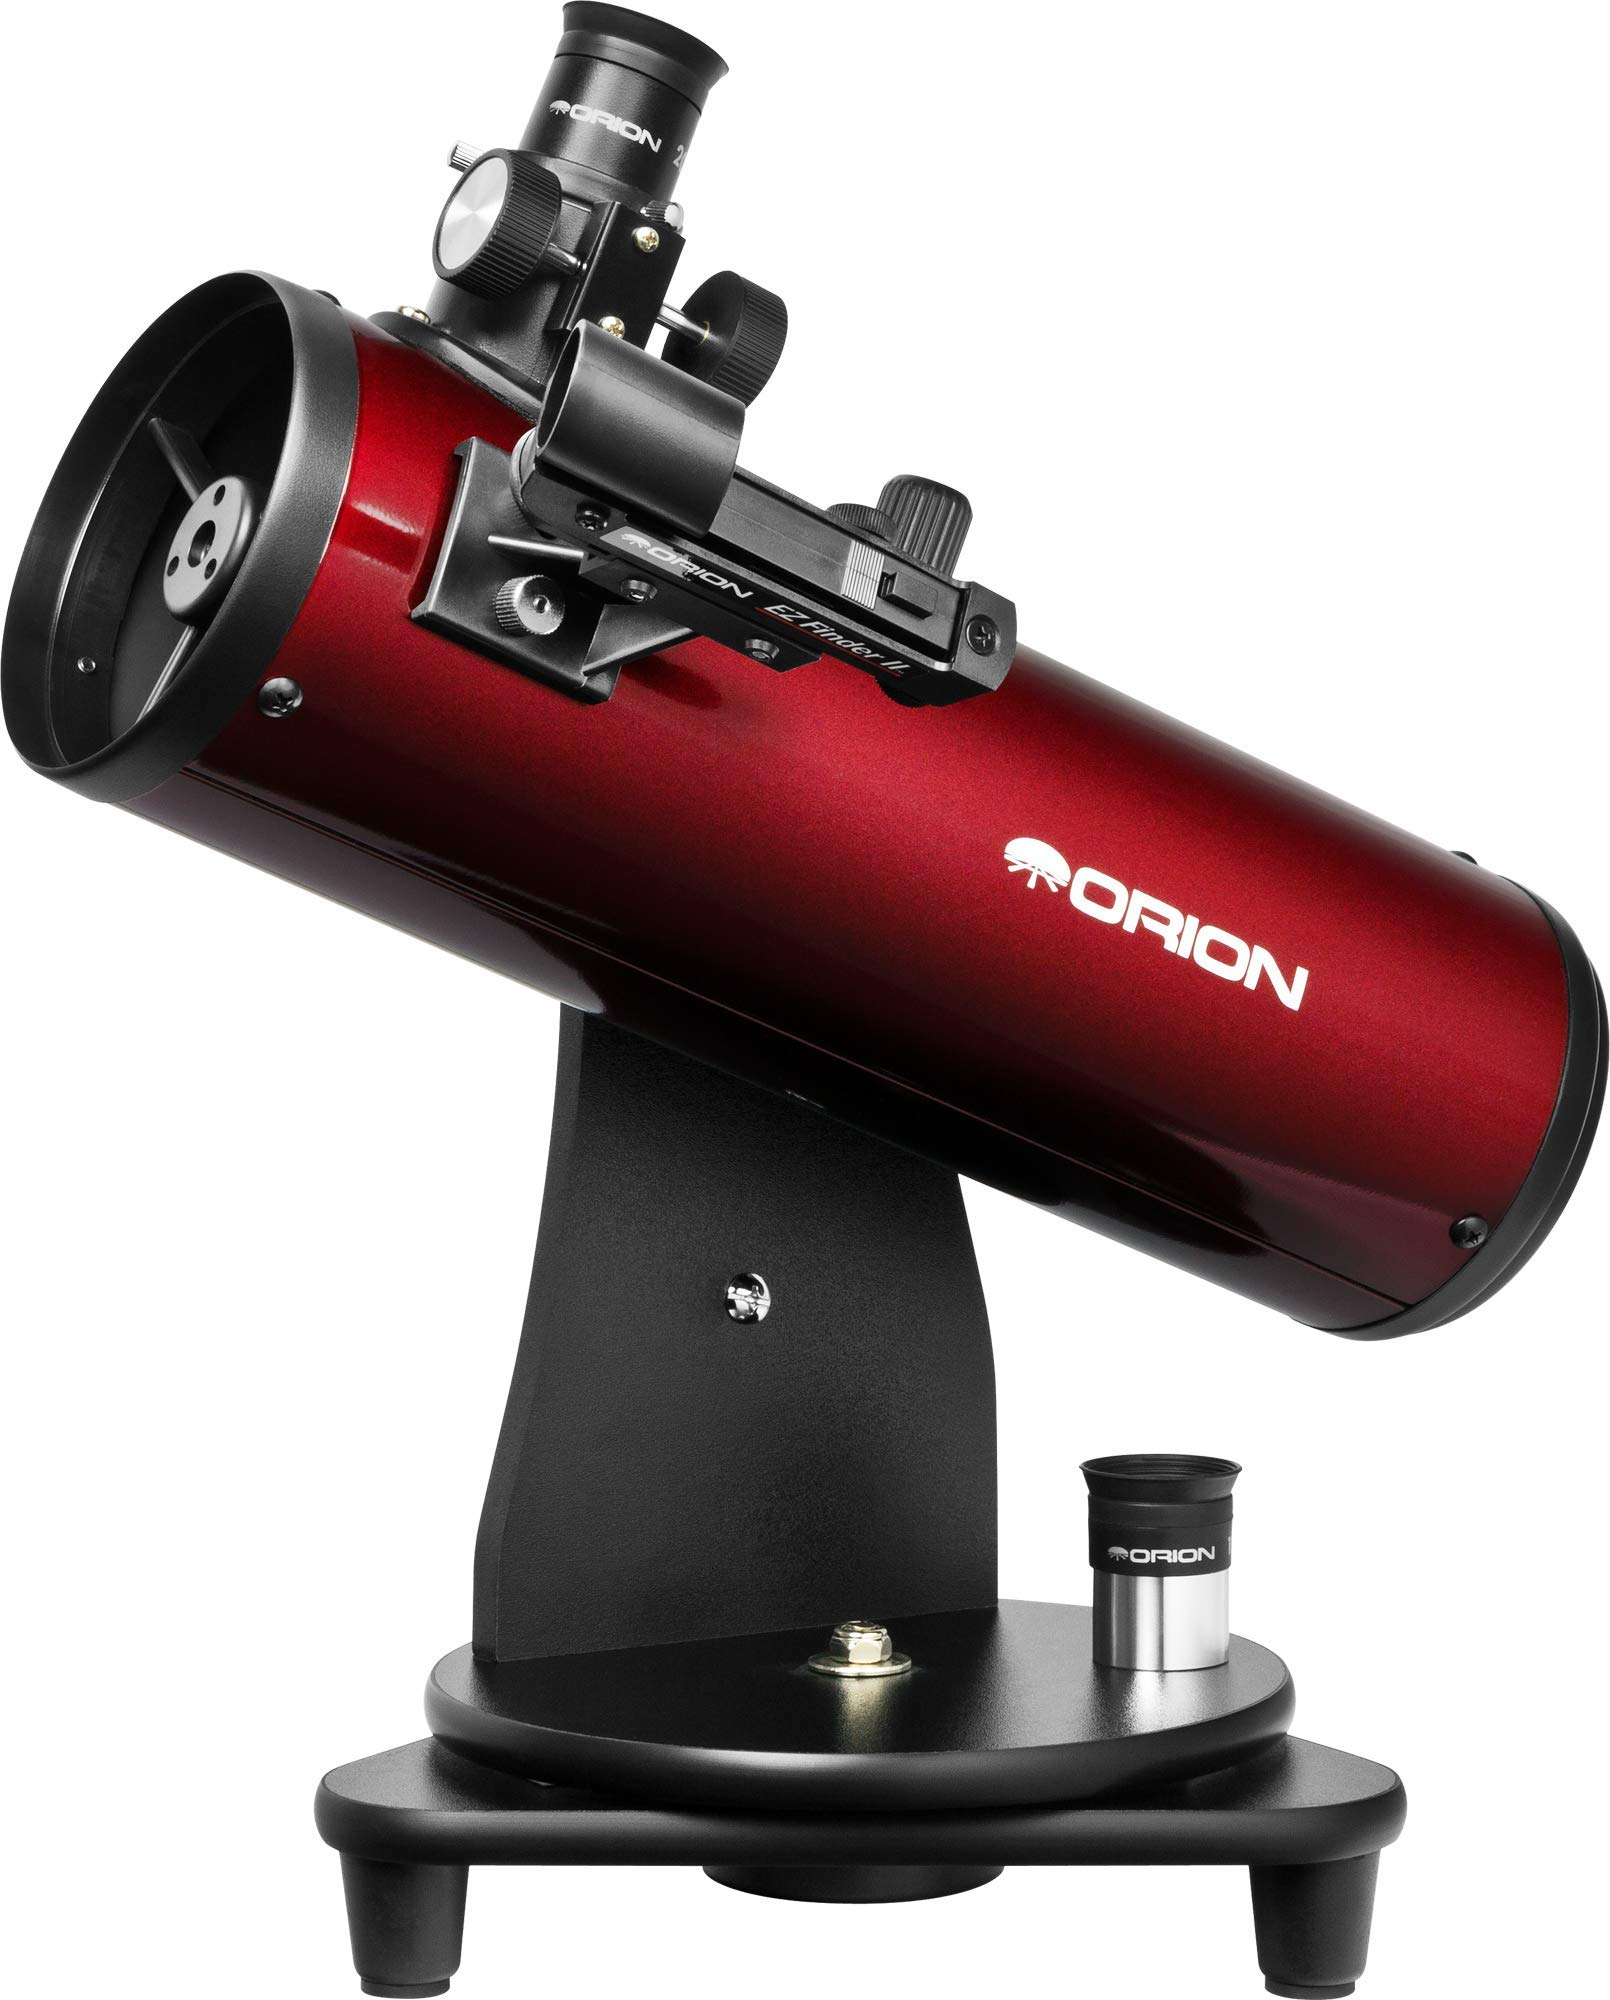 Orion 10012 SkyScanner 100mm TableTop Reflector Telescope (Burgundy) by Orion